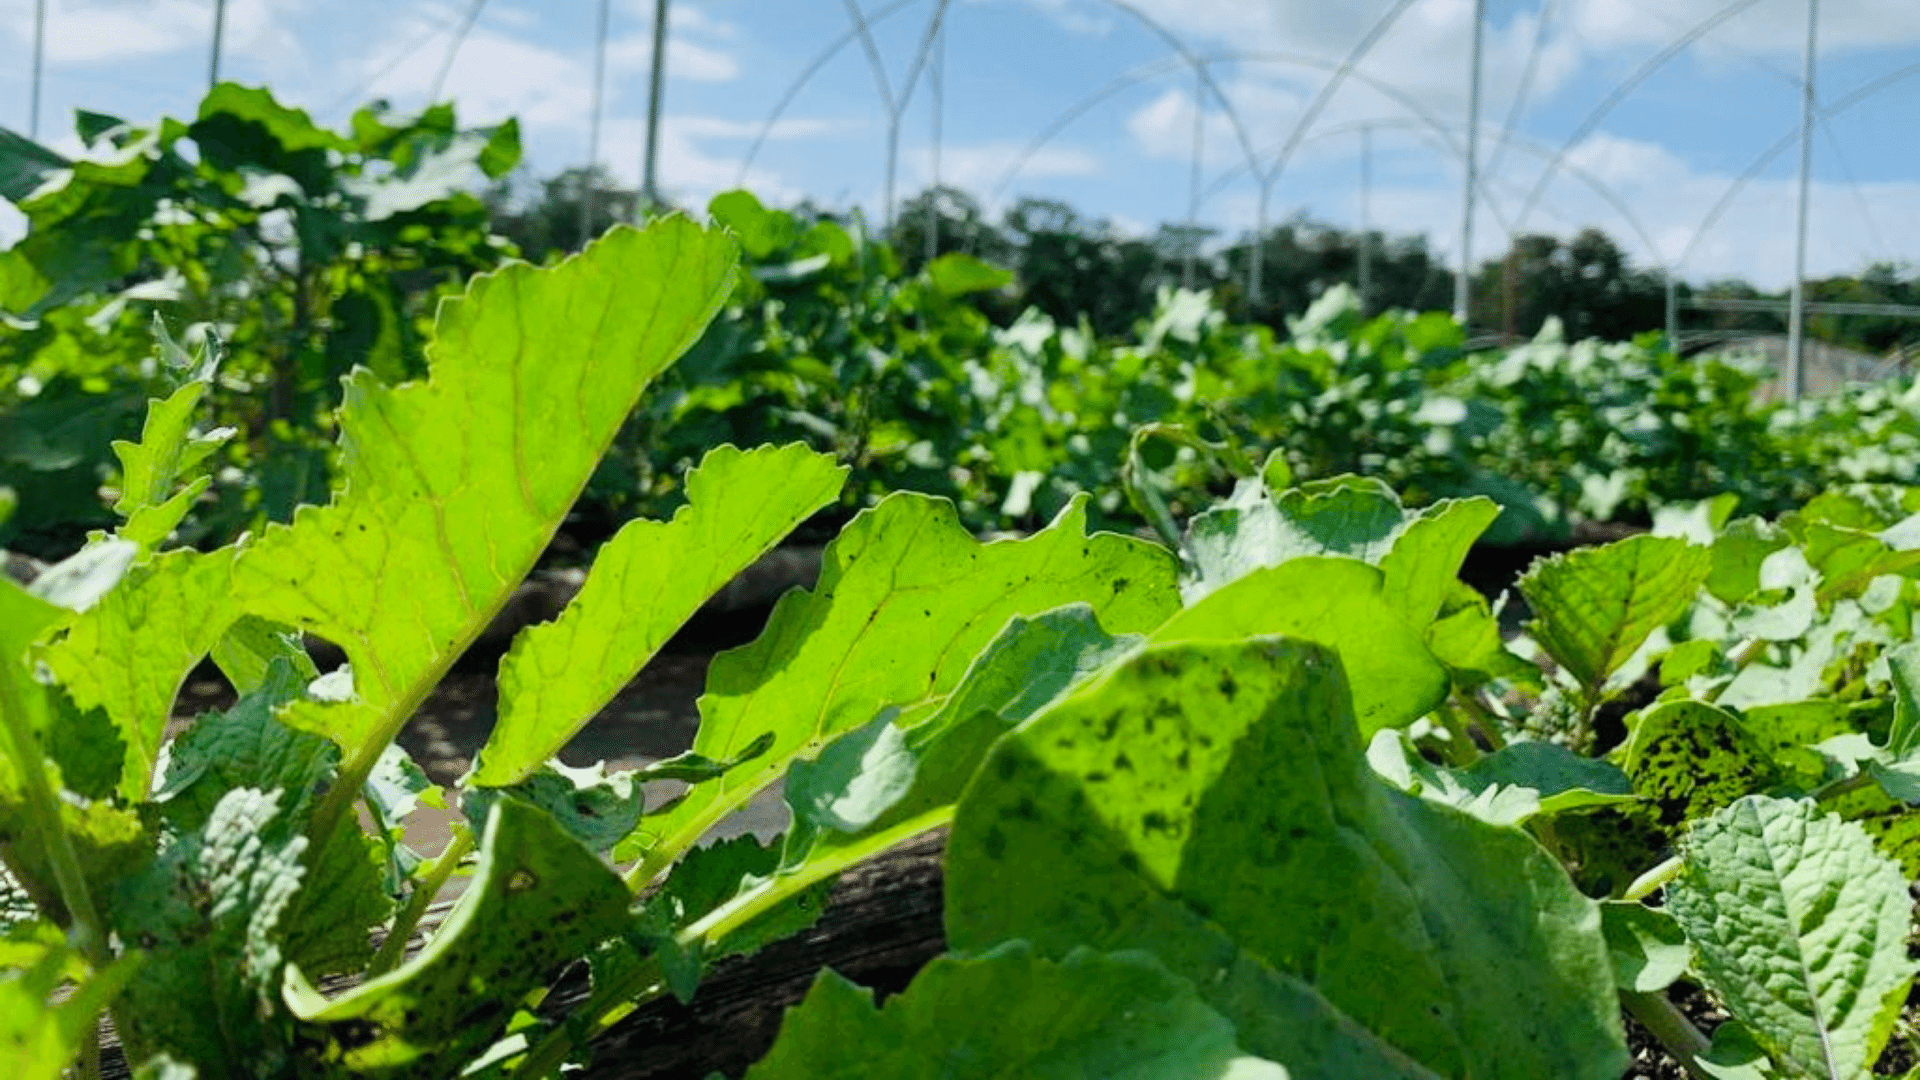 Where can I buy organic produce in Mérida?